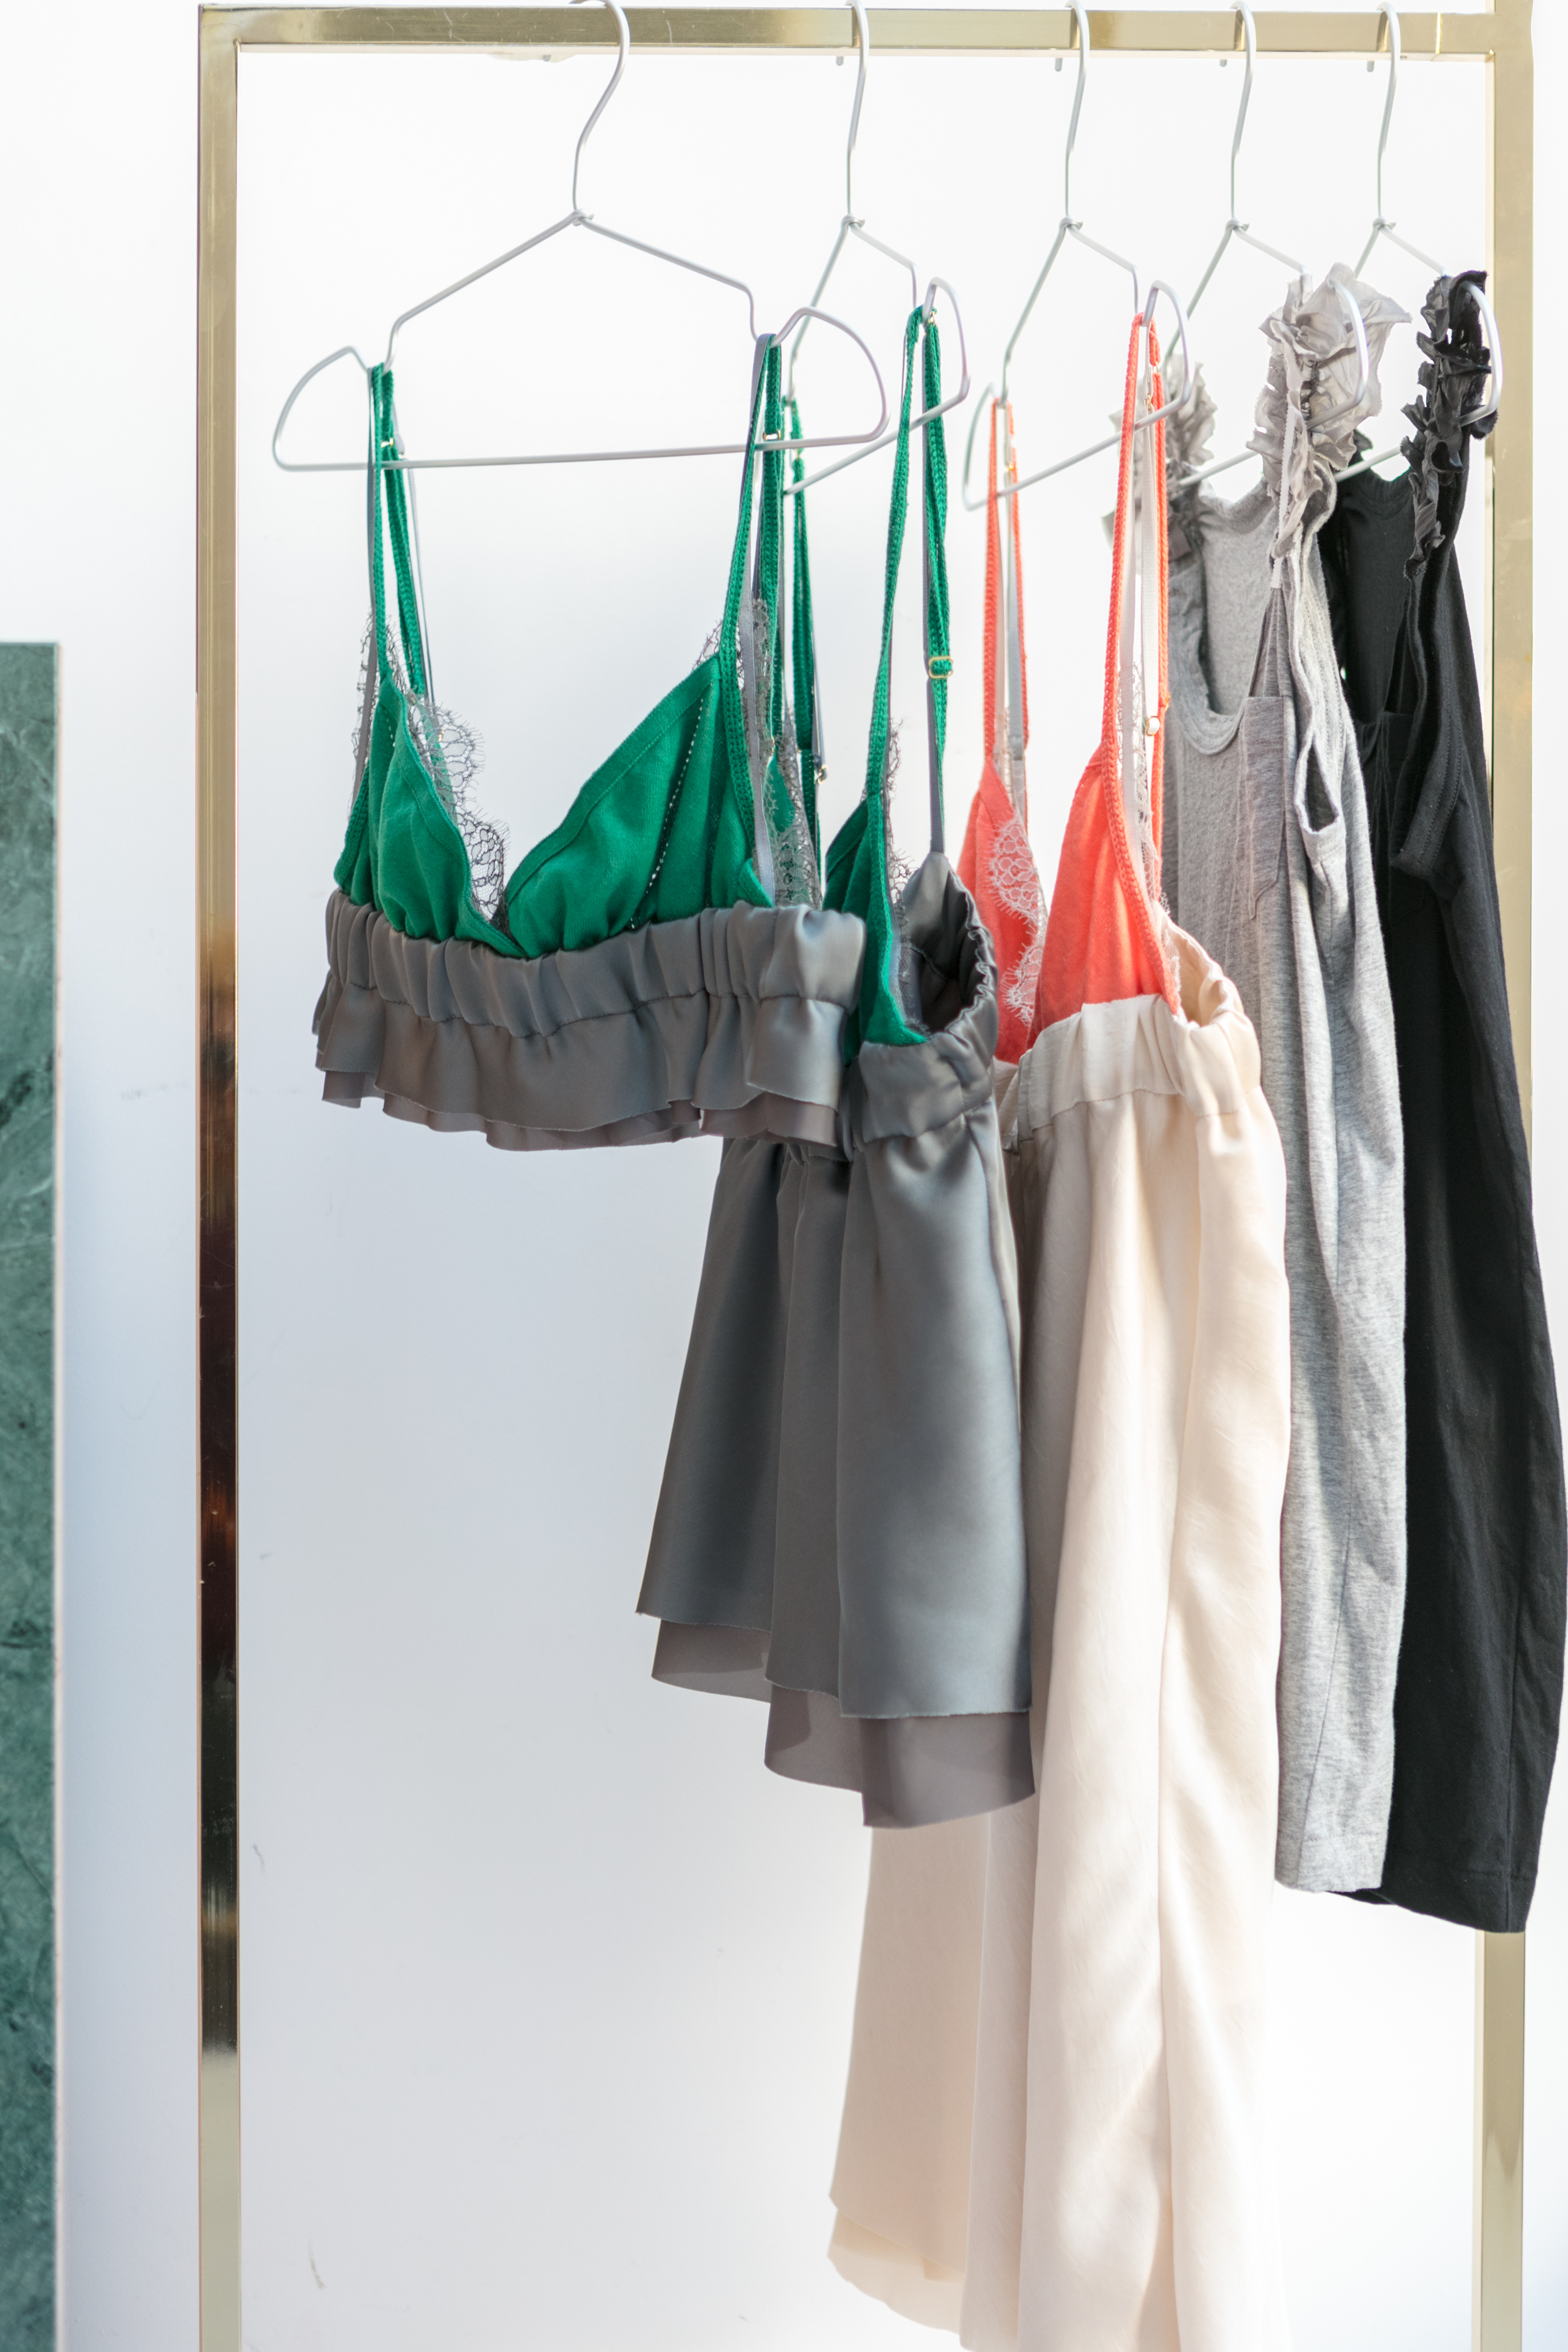 sacai lingerie & home wear